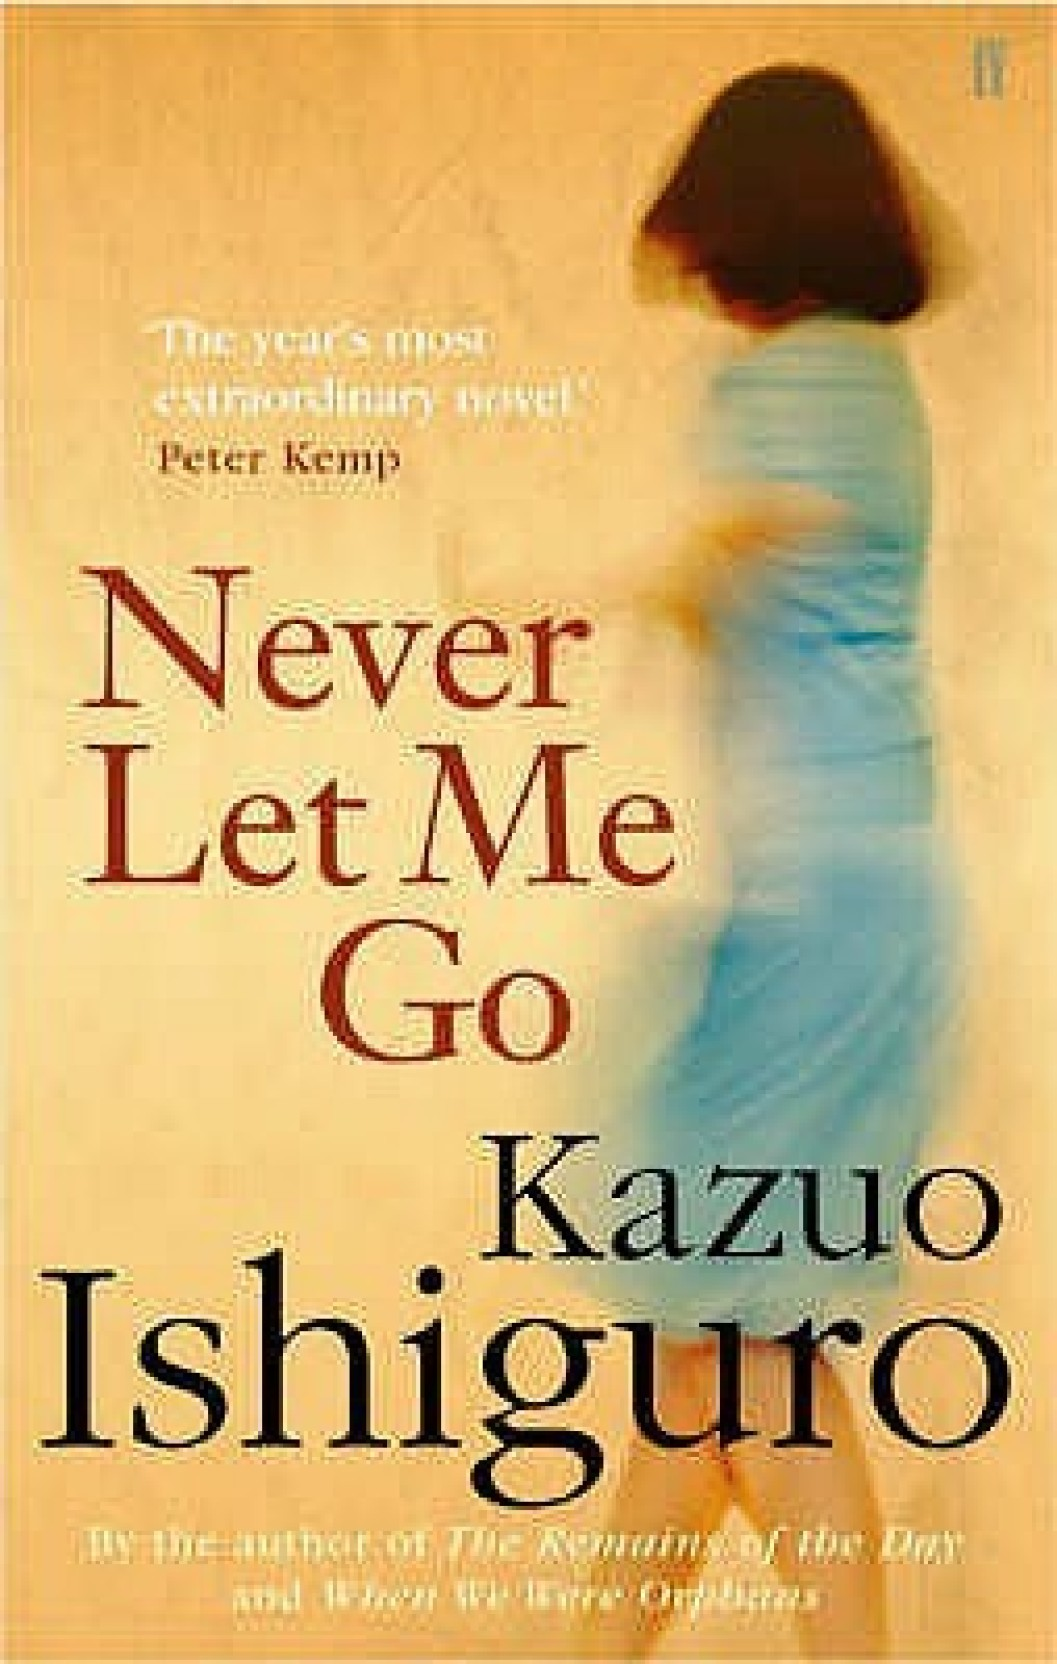 never let me go book review Amazonin - buy never let me go book online at best prices in india on amazonin read never let me go book reviews & author details and more at amazonin free delivery on qualified orders.